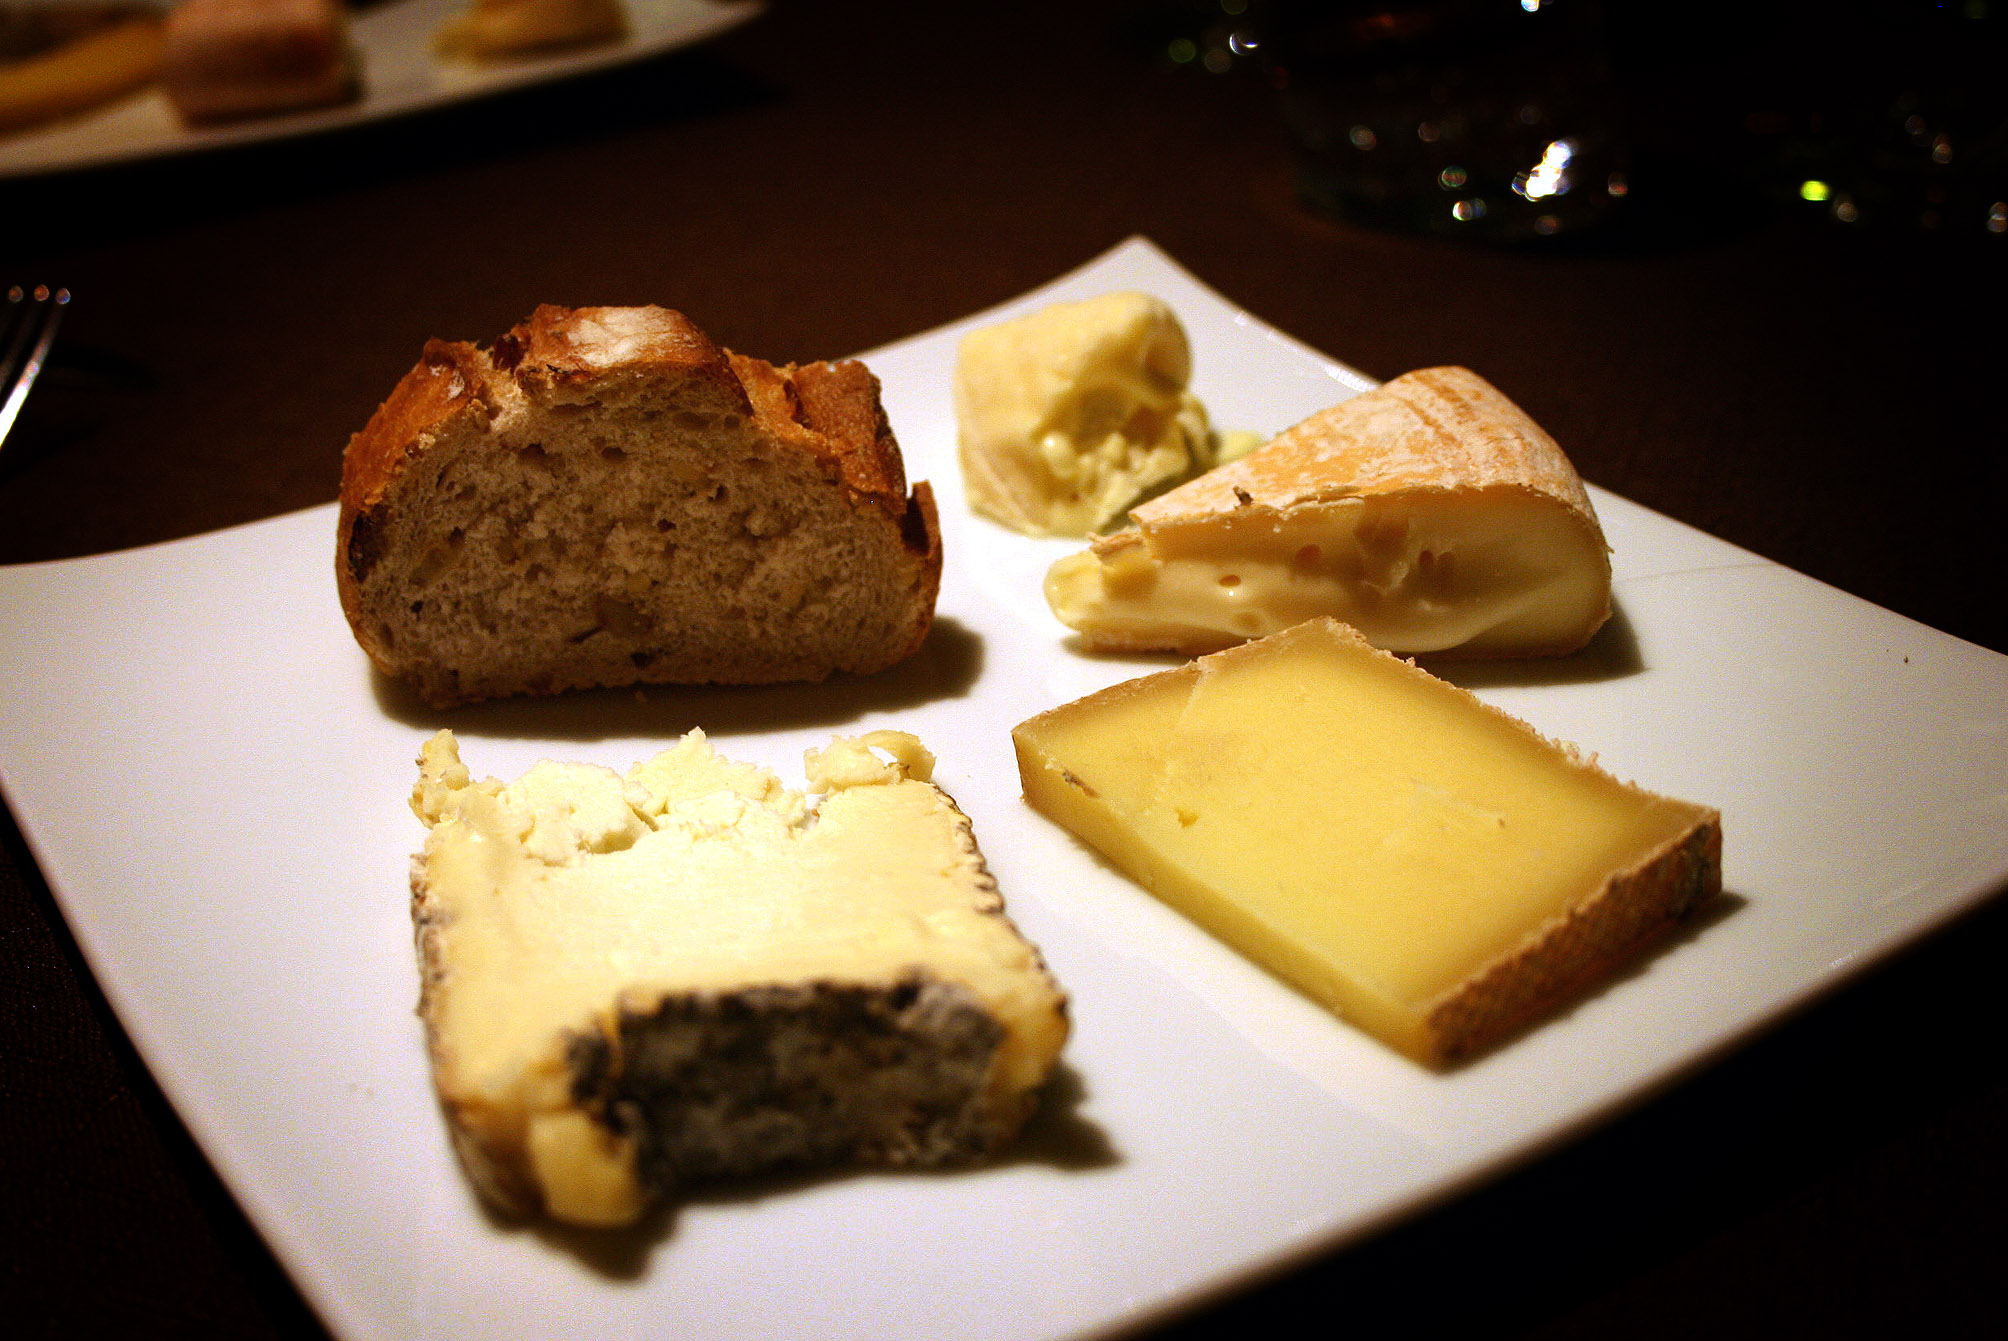 My selection of cheeses